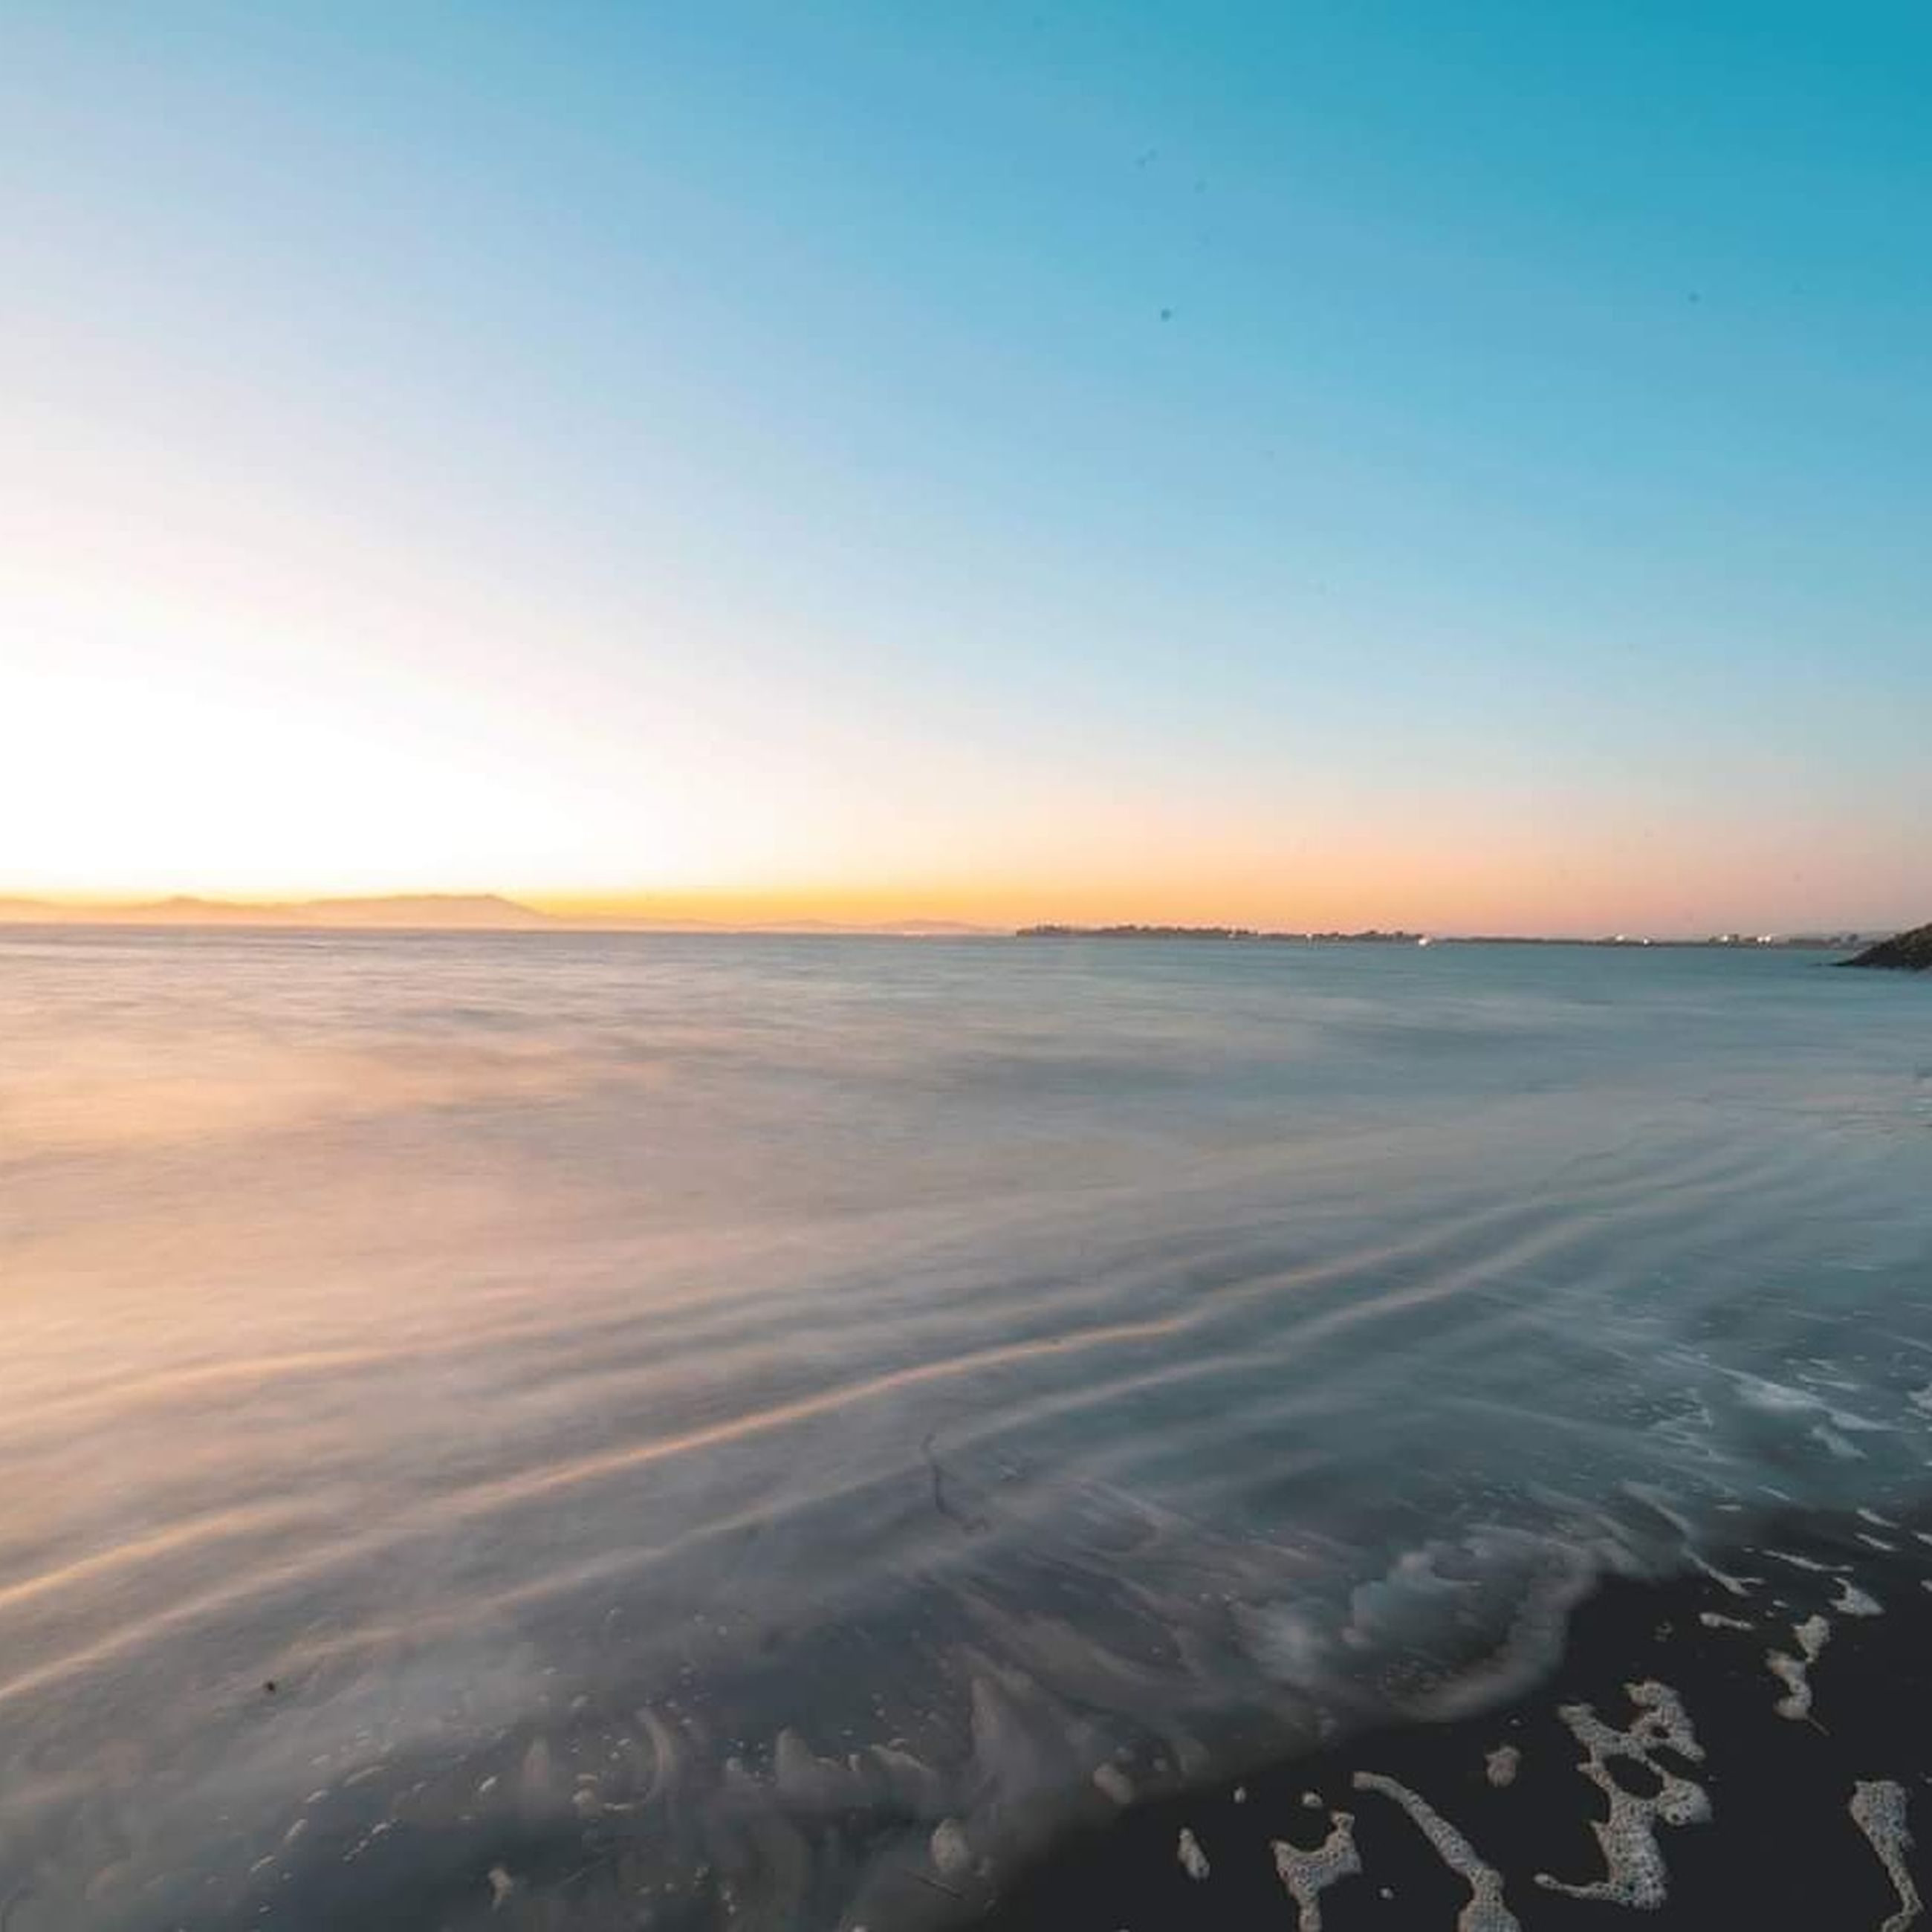 sky, sea, beauty in nature, scenics - nature, water, beach, land, tranquility, tranquil scene, clear sky, copy space, nature, horizon, no people, sunset, idyllic, horizon over water, outdoors, non-urban scene